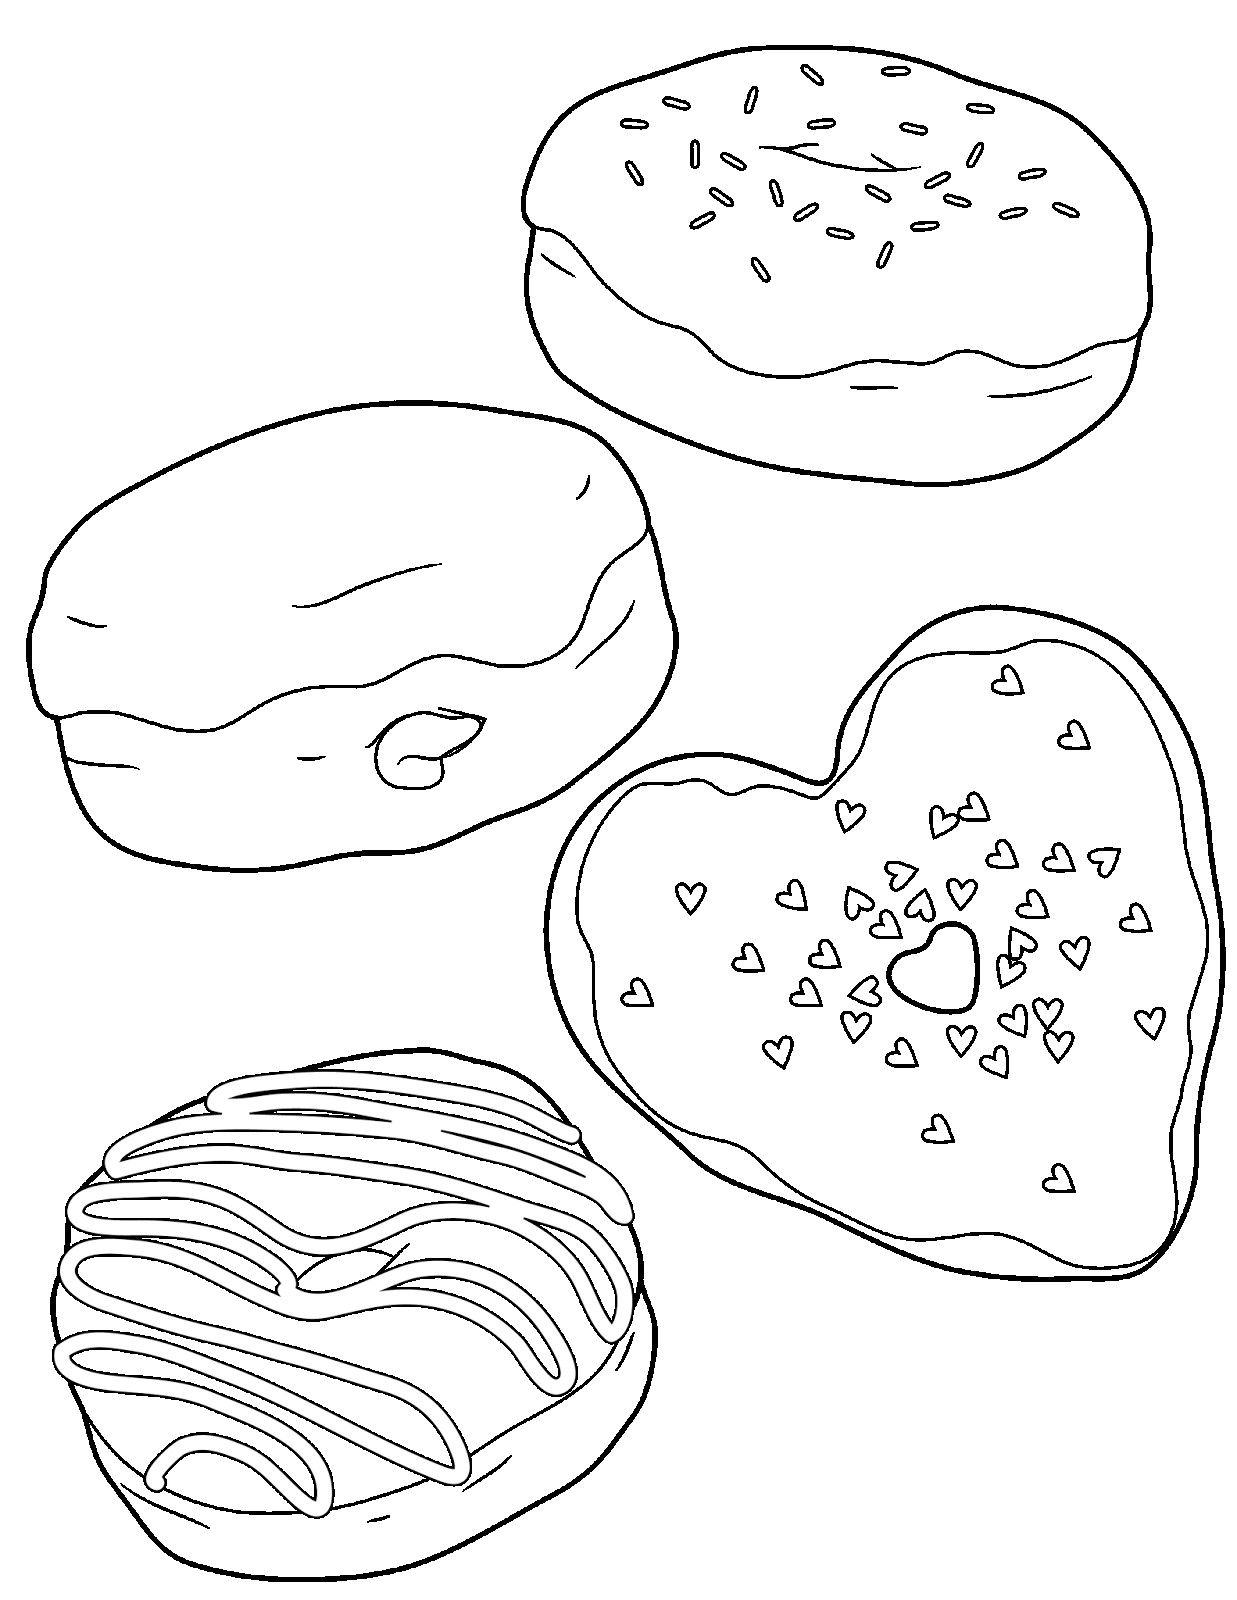 Coloring printable donut